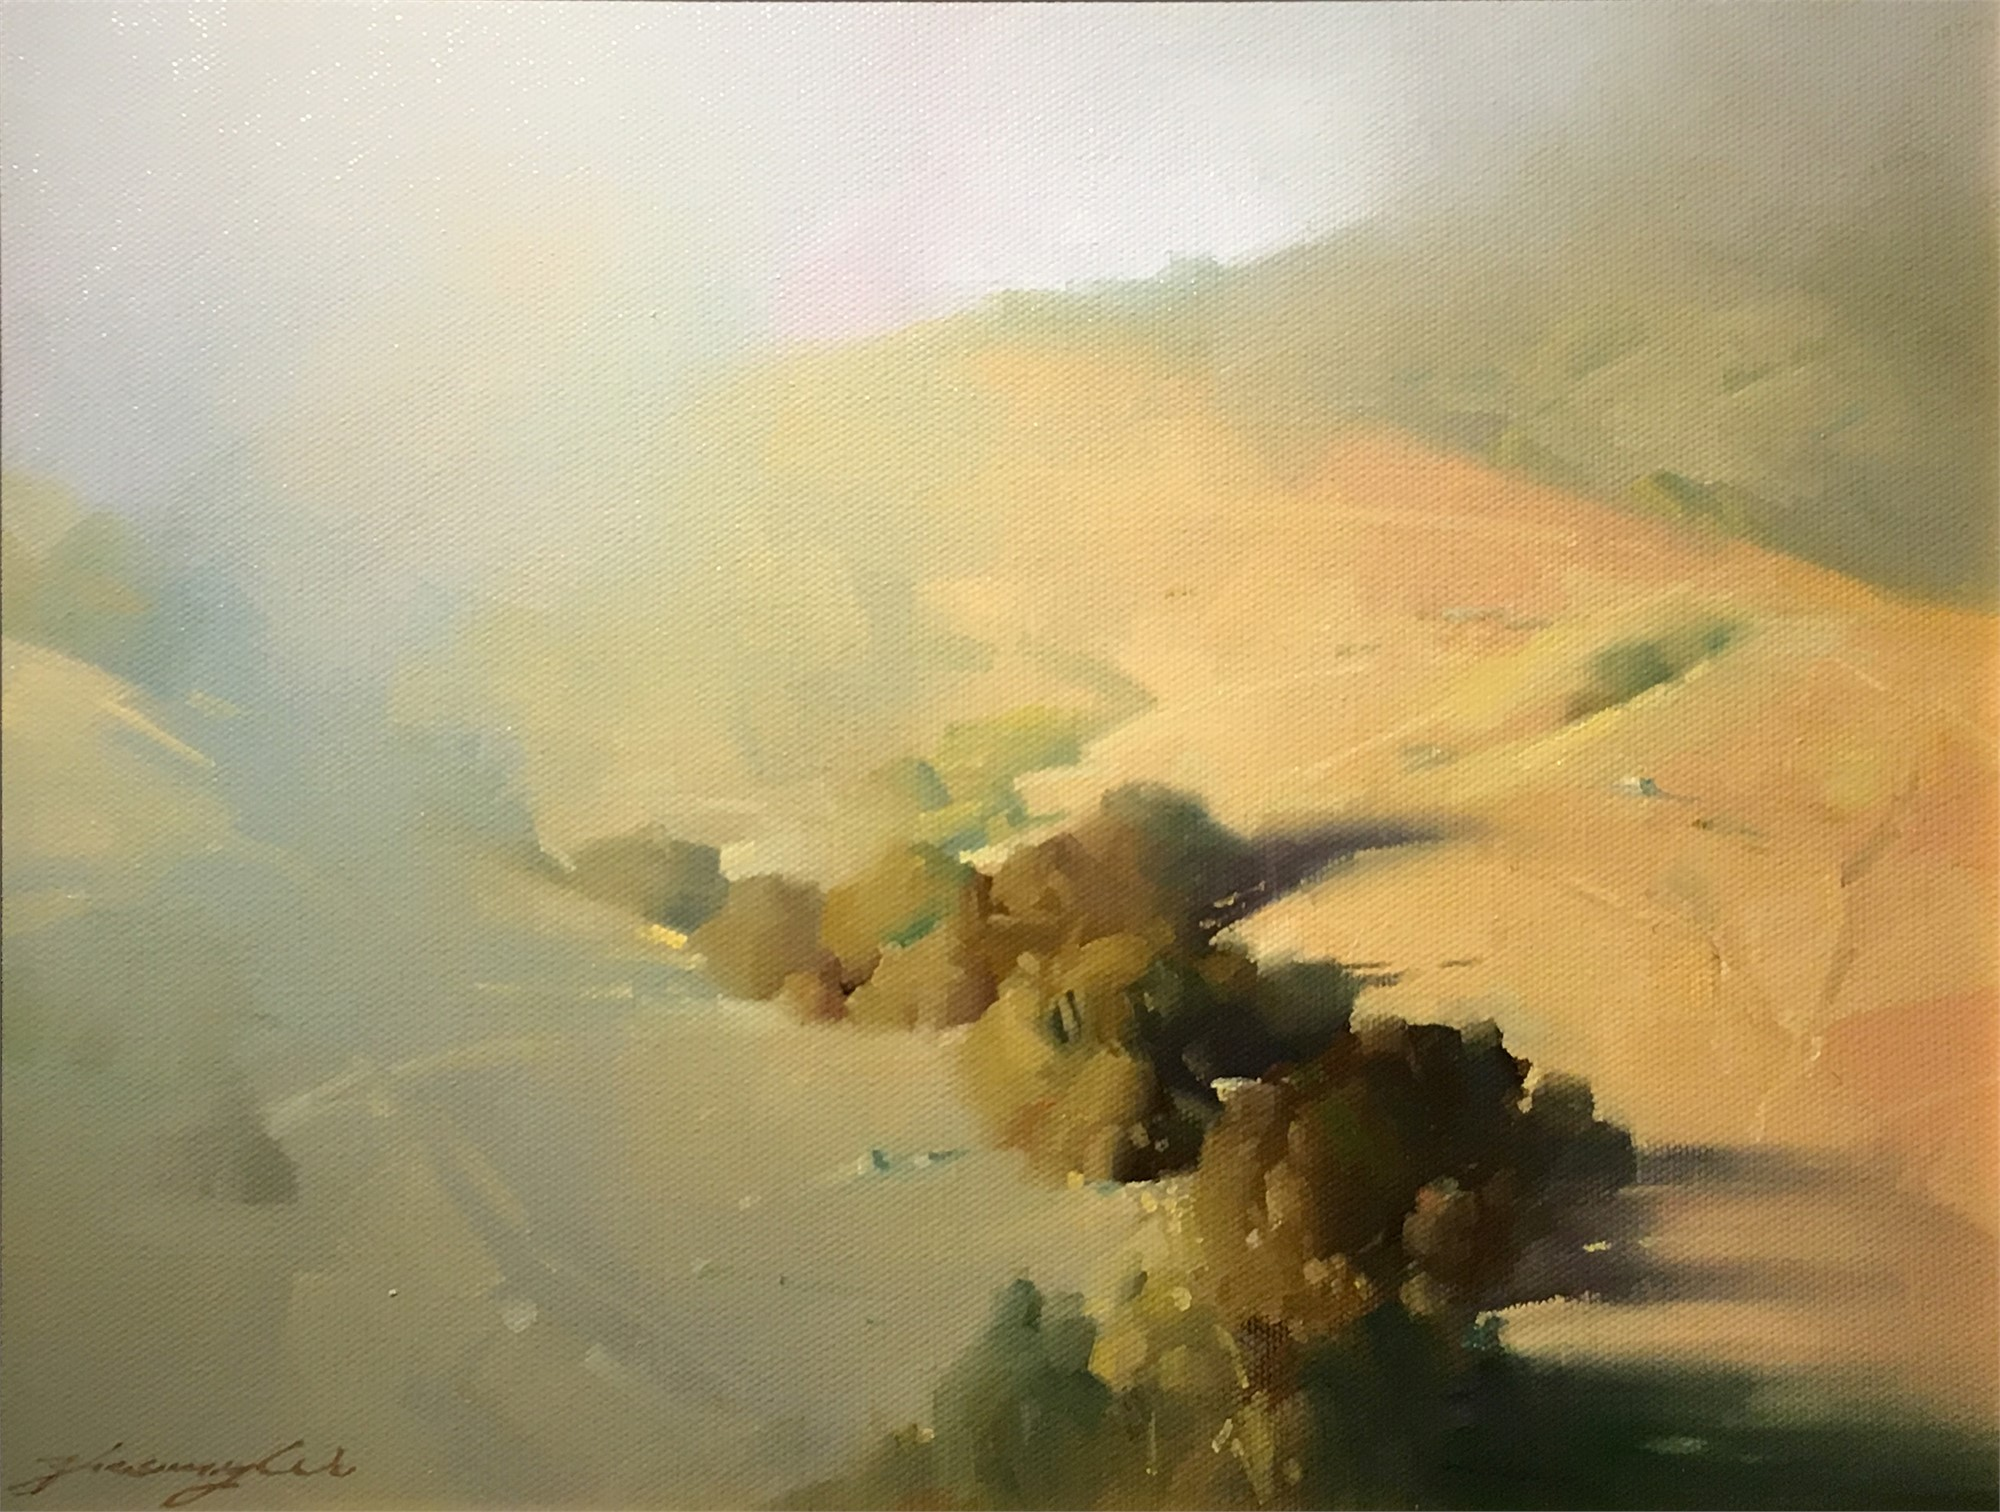 Canyon in Fog by Zhaoming Wu